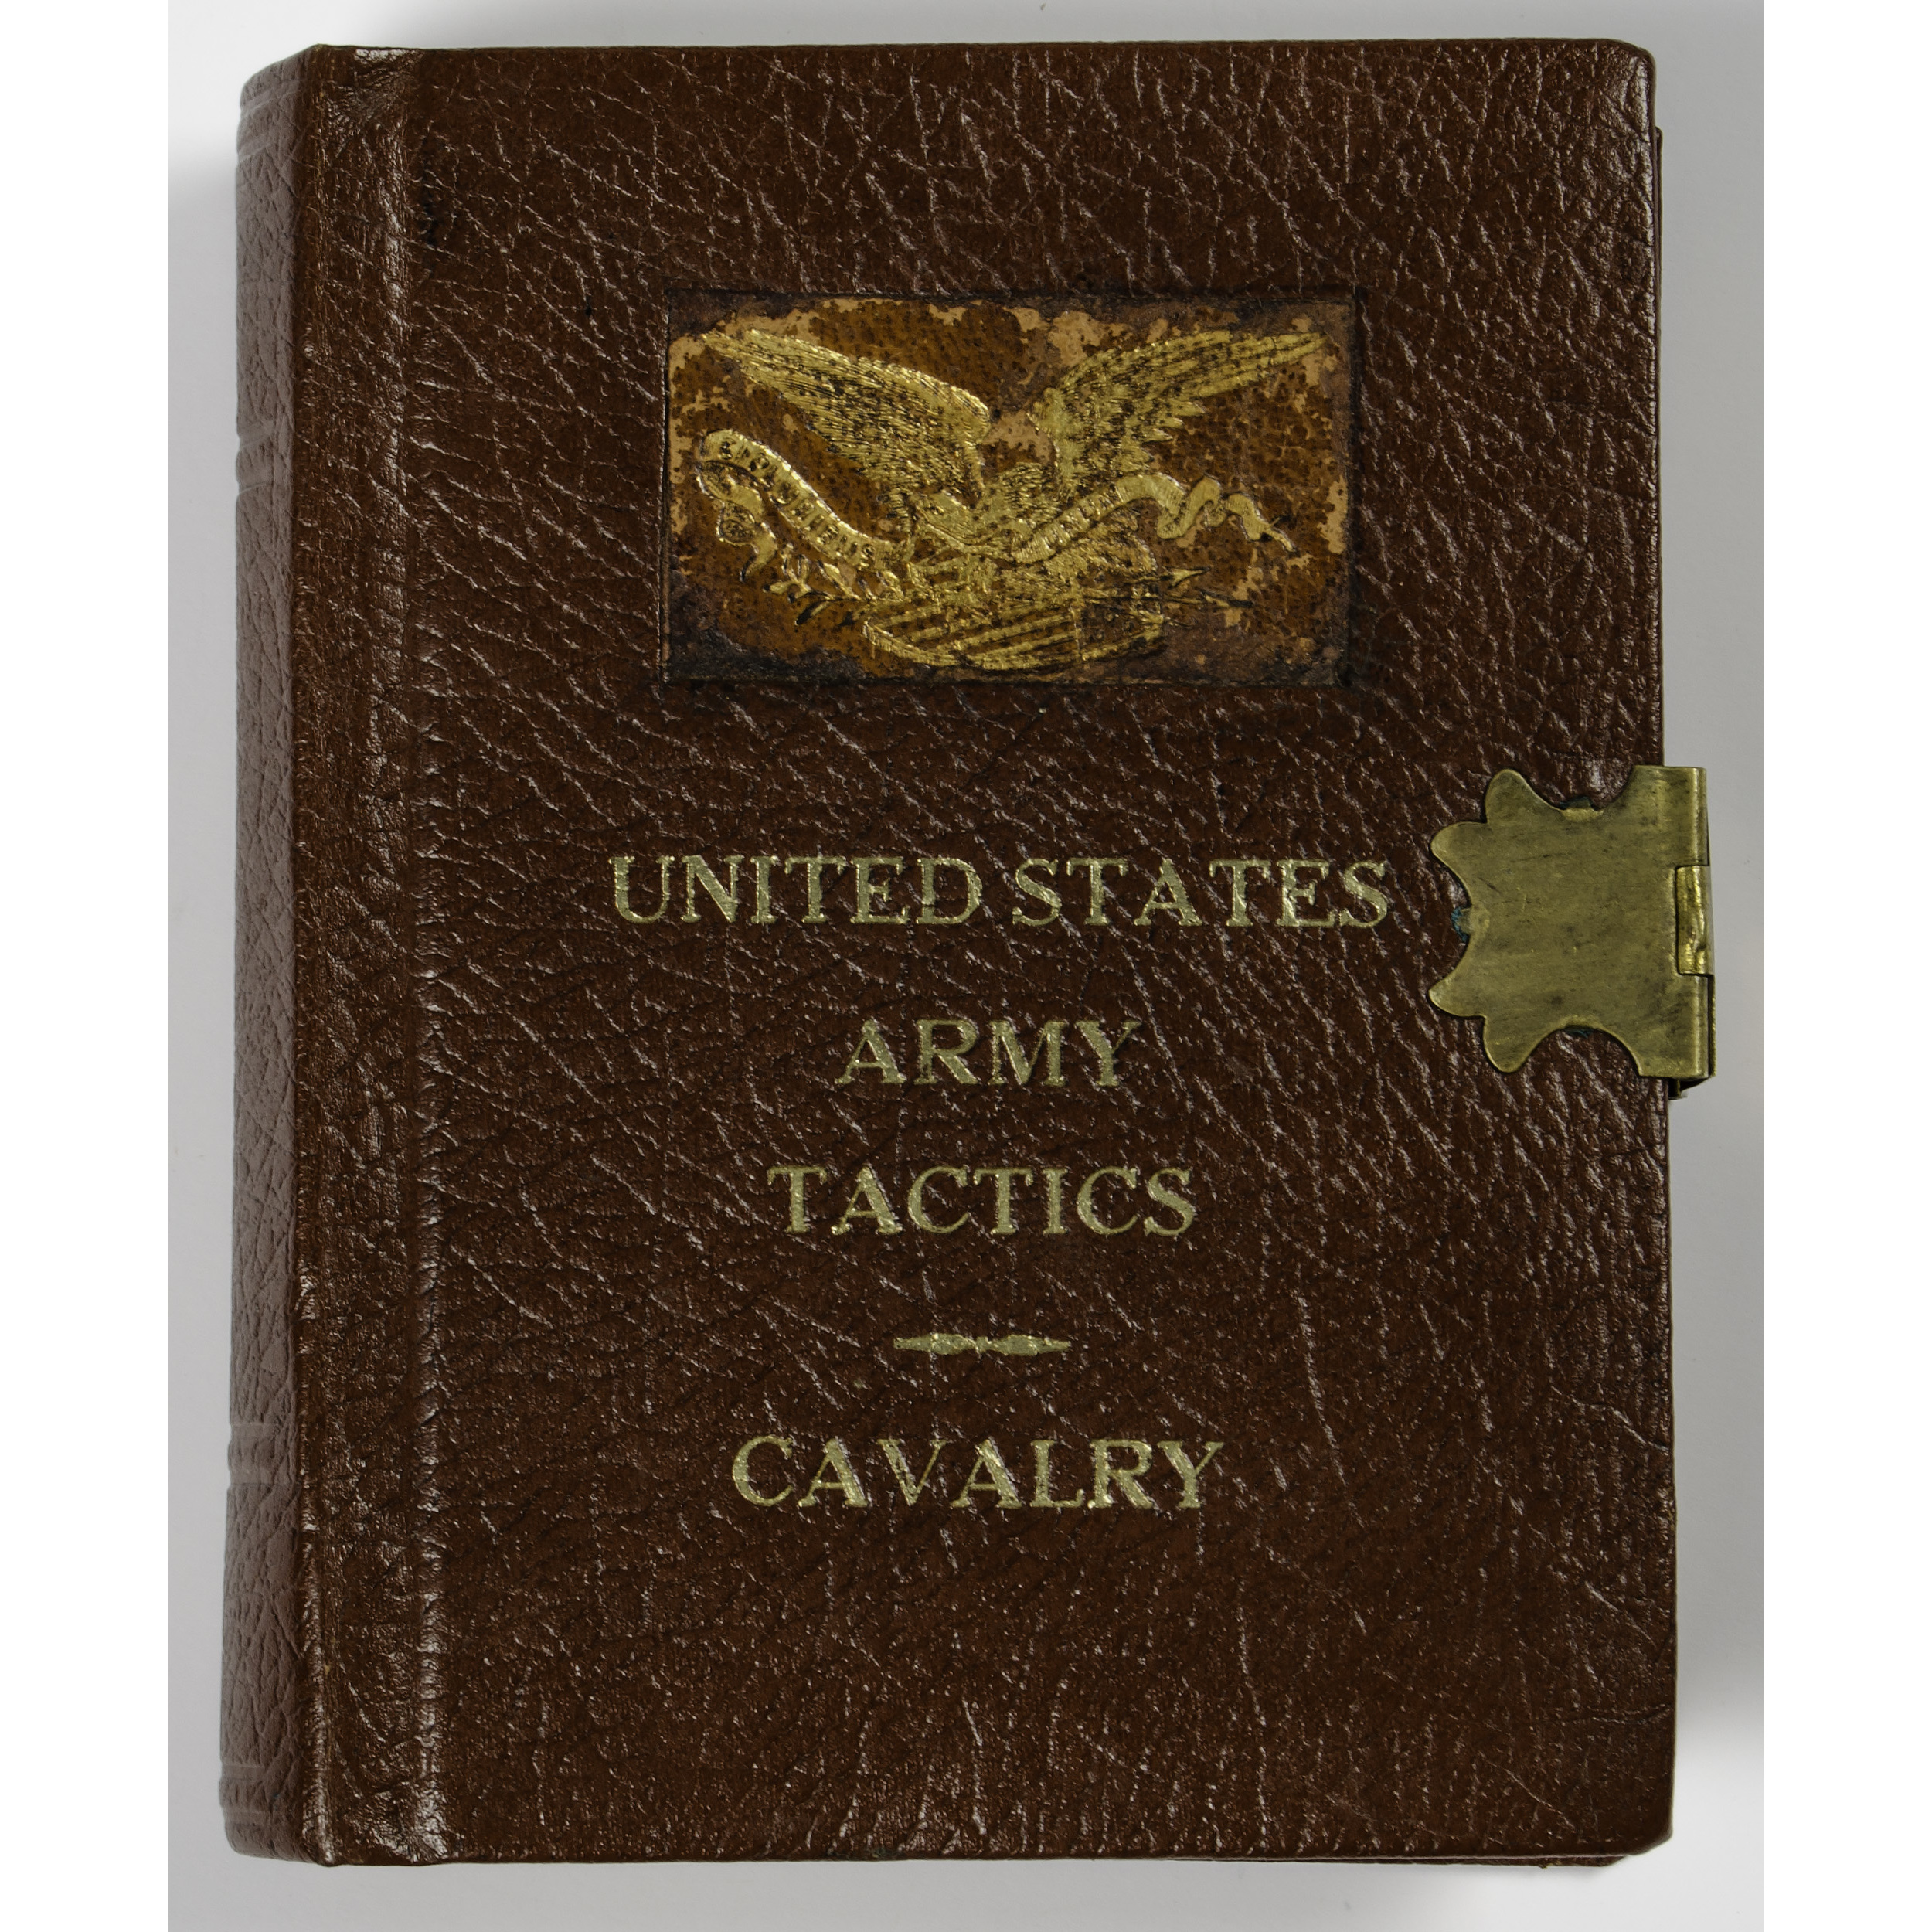 United States Army Tactics / Cavalry Manual, 1874